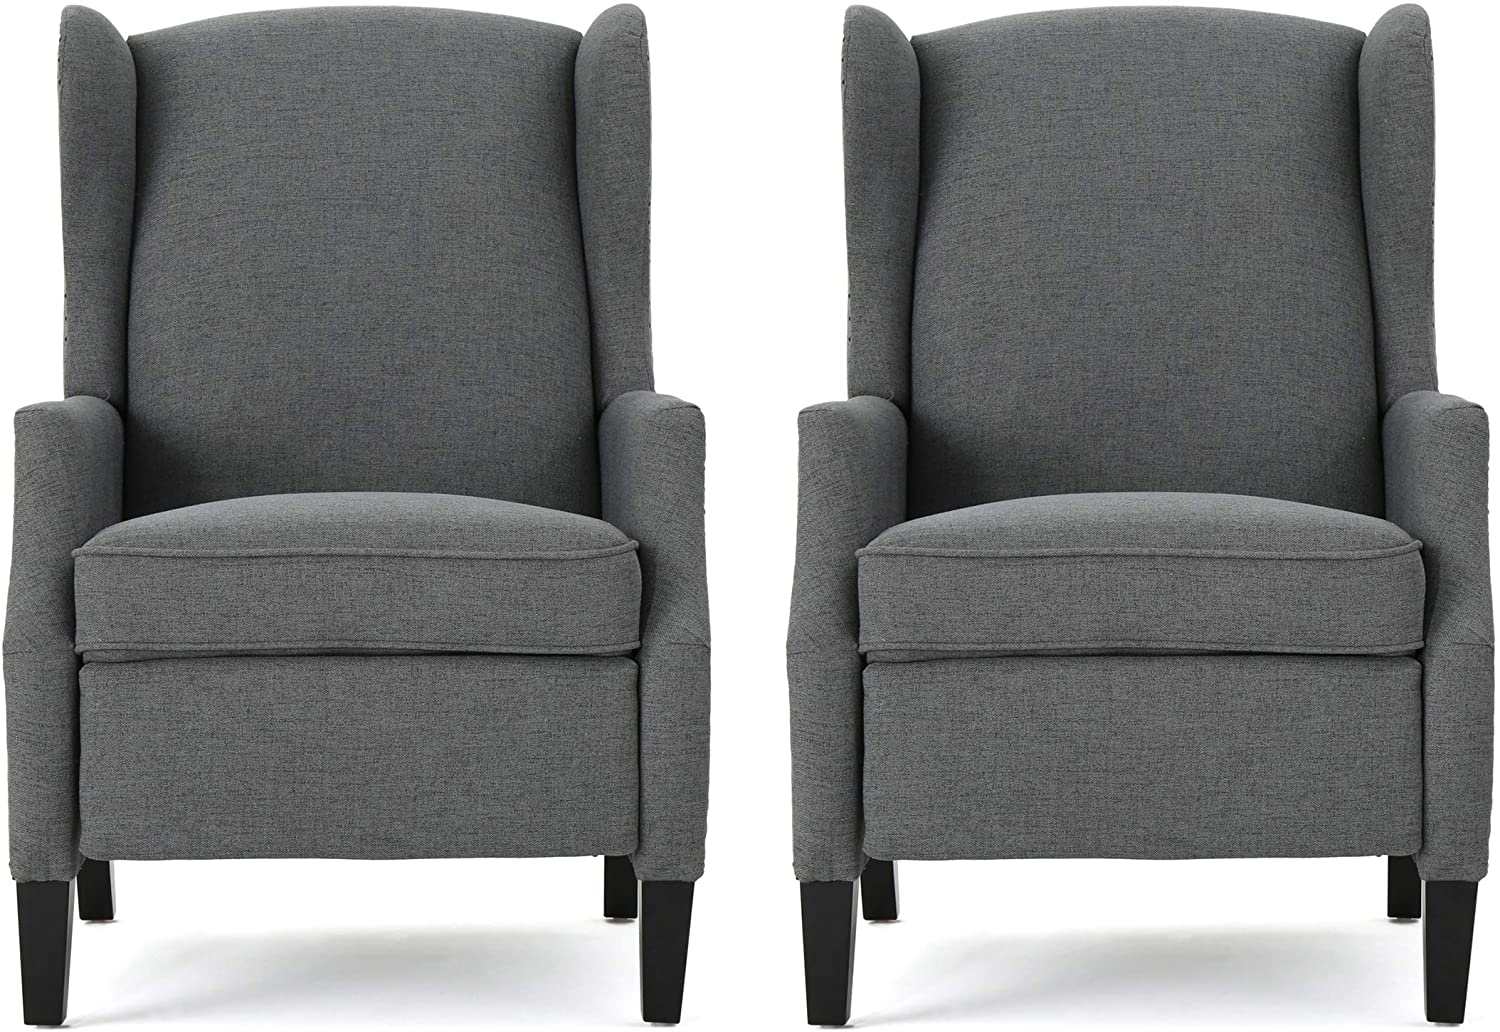 Christopher Knight Home Ellyn Fabric Recliner (Set of 2), Charcoal, Dark Brown